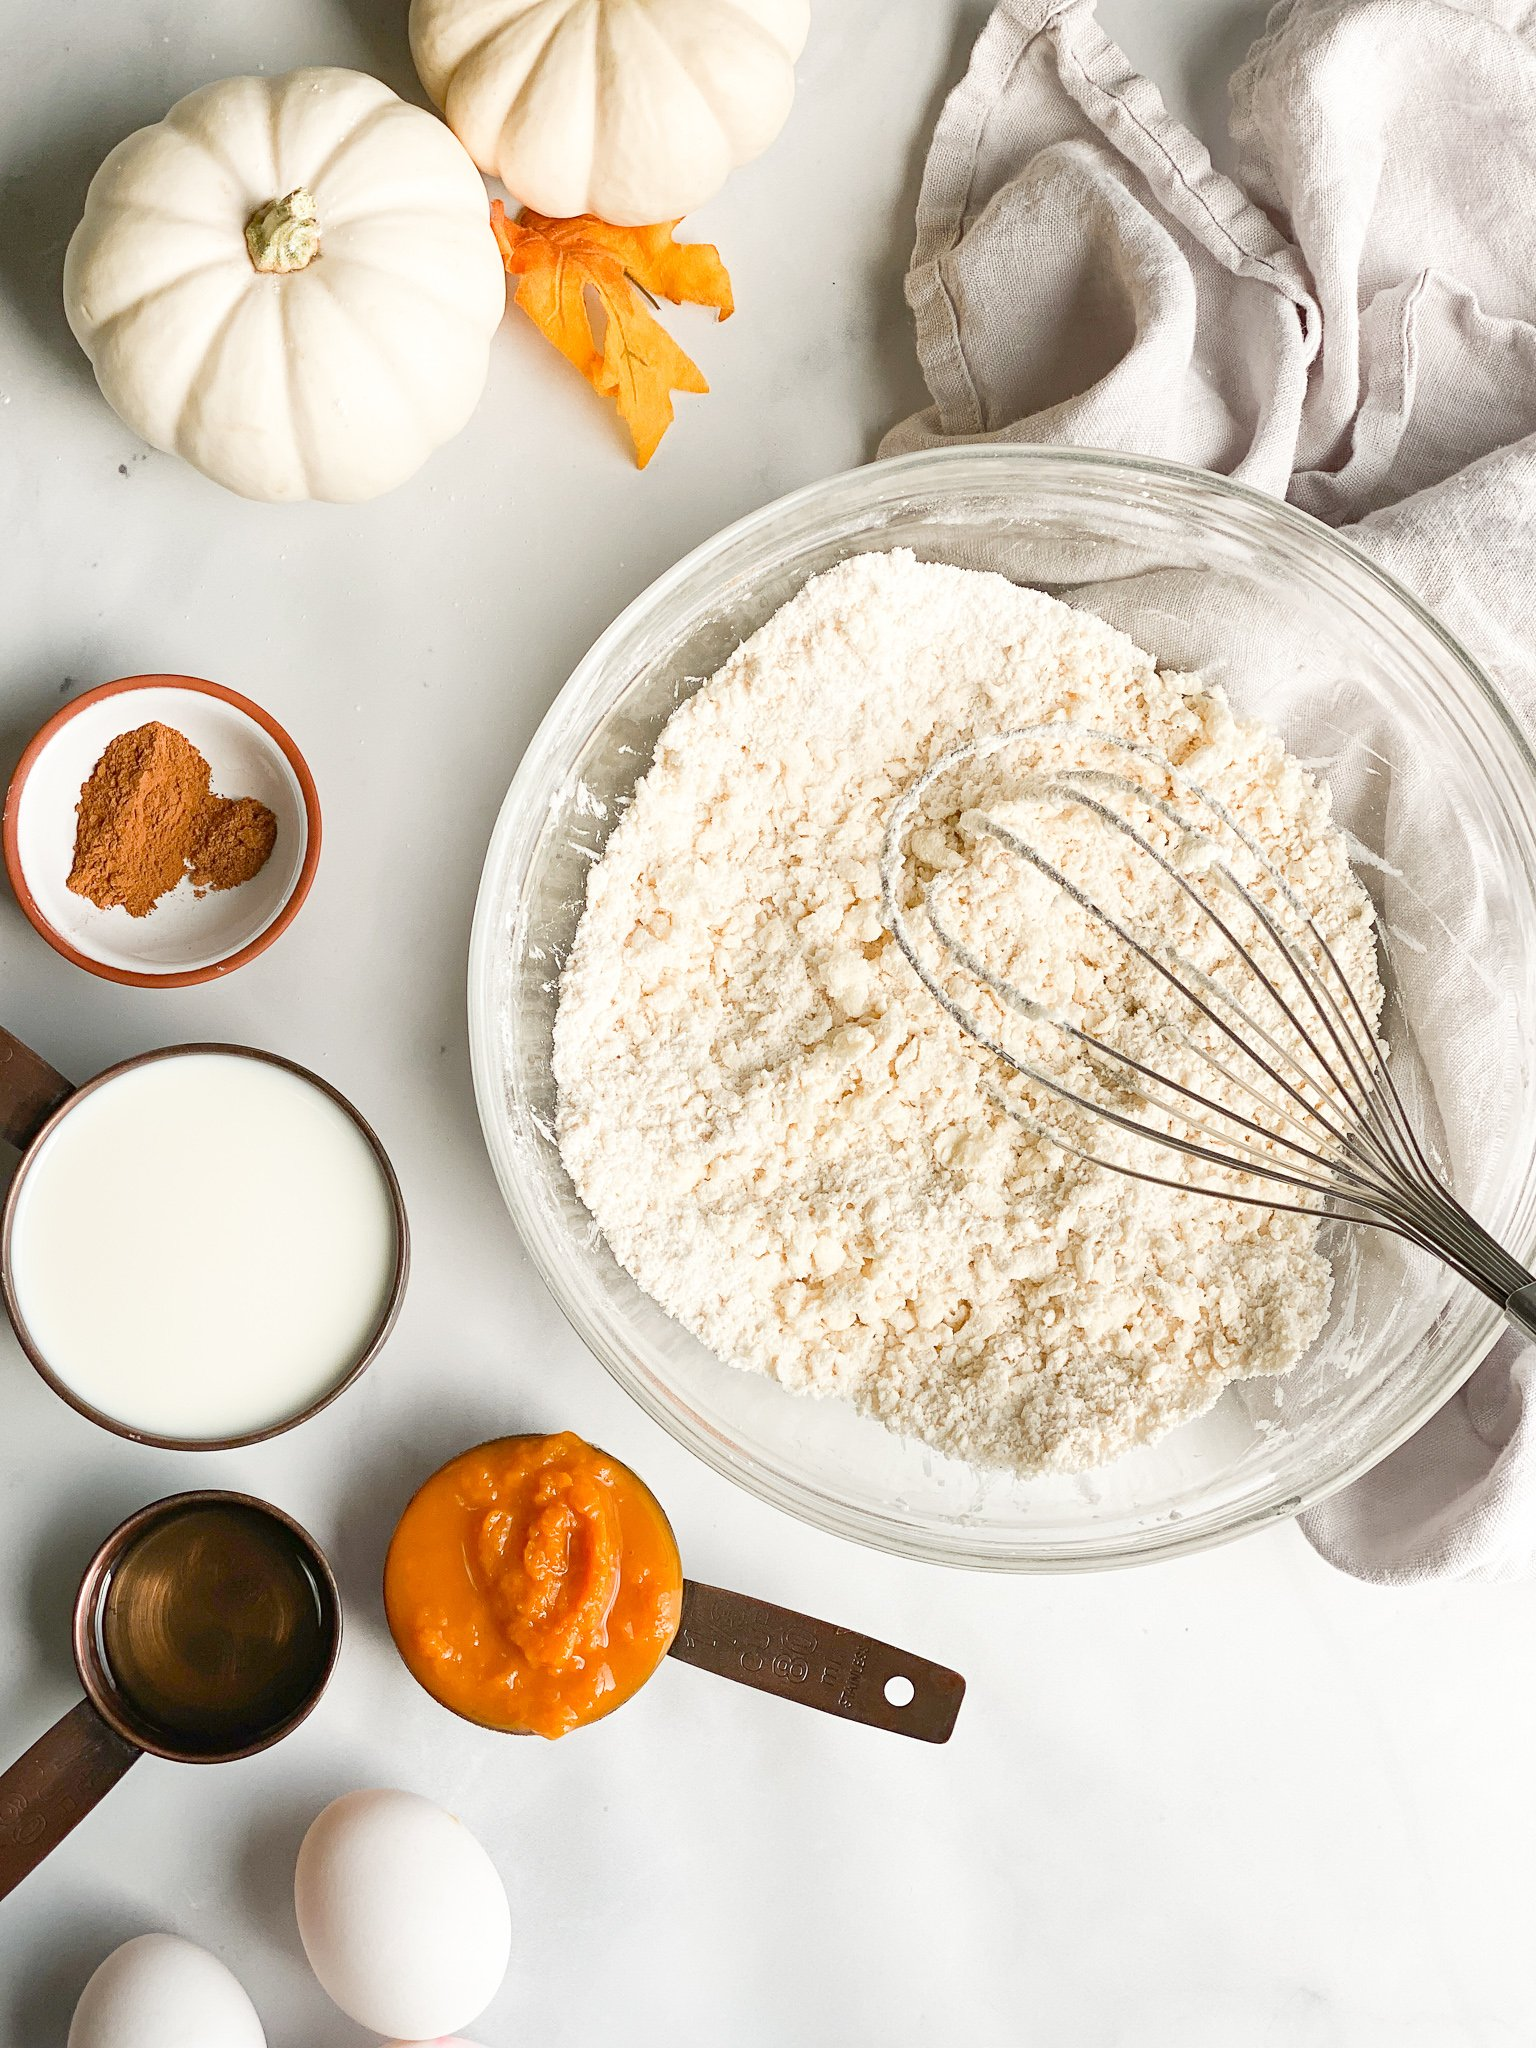 Step 1 of pumpkin waffles is to combine the cassava, arrowroot, sugar and salt to a bowl with the soft butter. Like cutting butter for making pie cut the butter into the flour mixture until it resembles wet sand with a few pieces of butter.